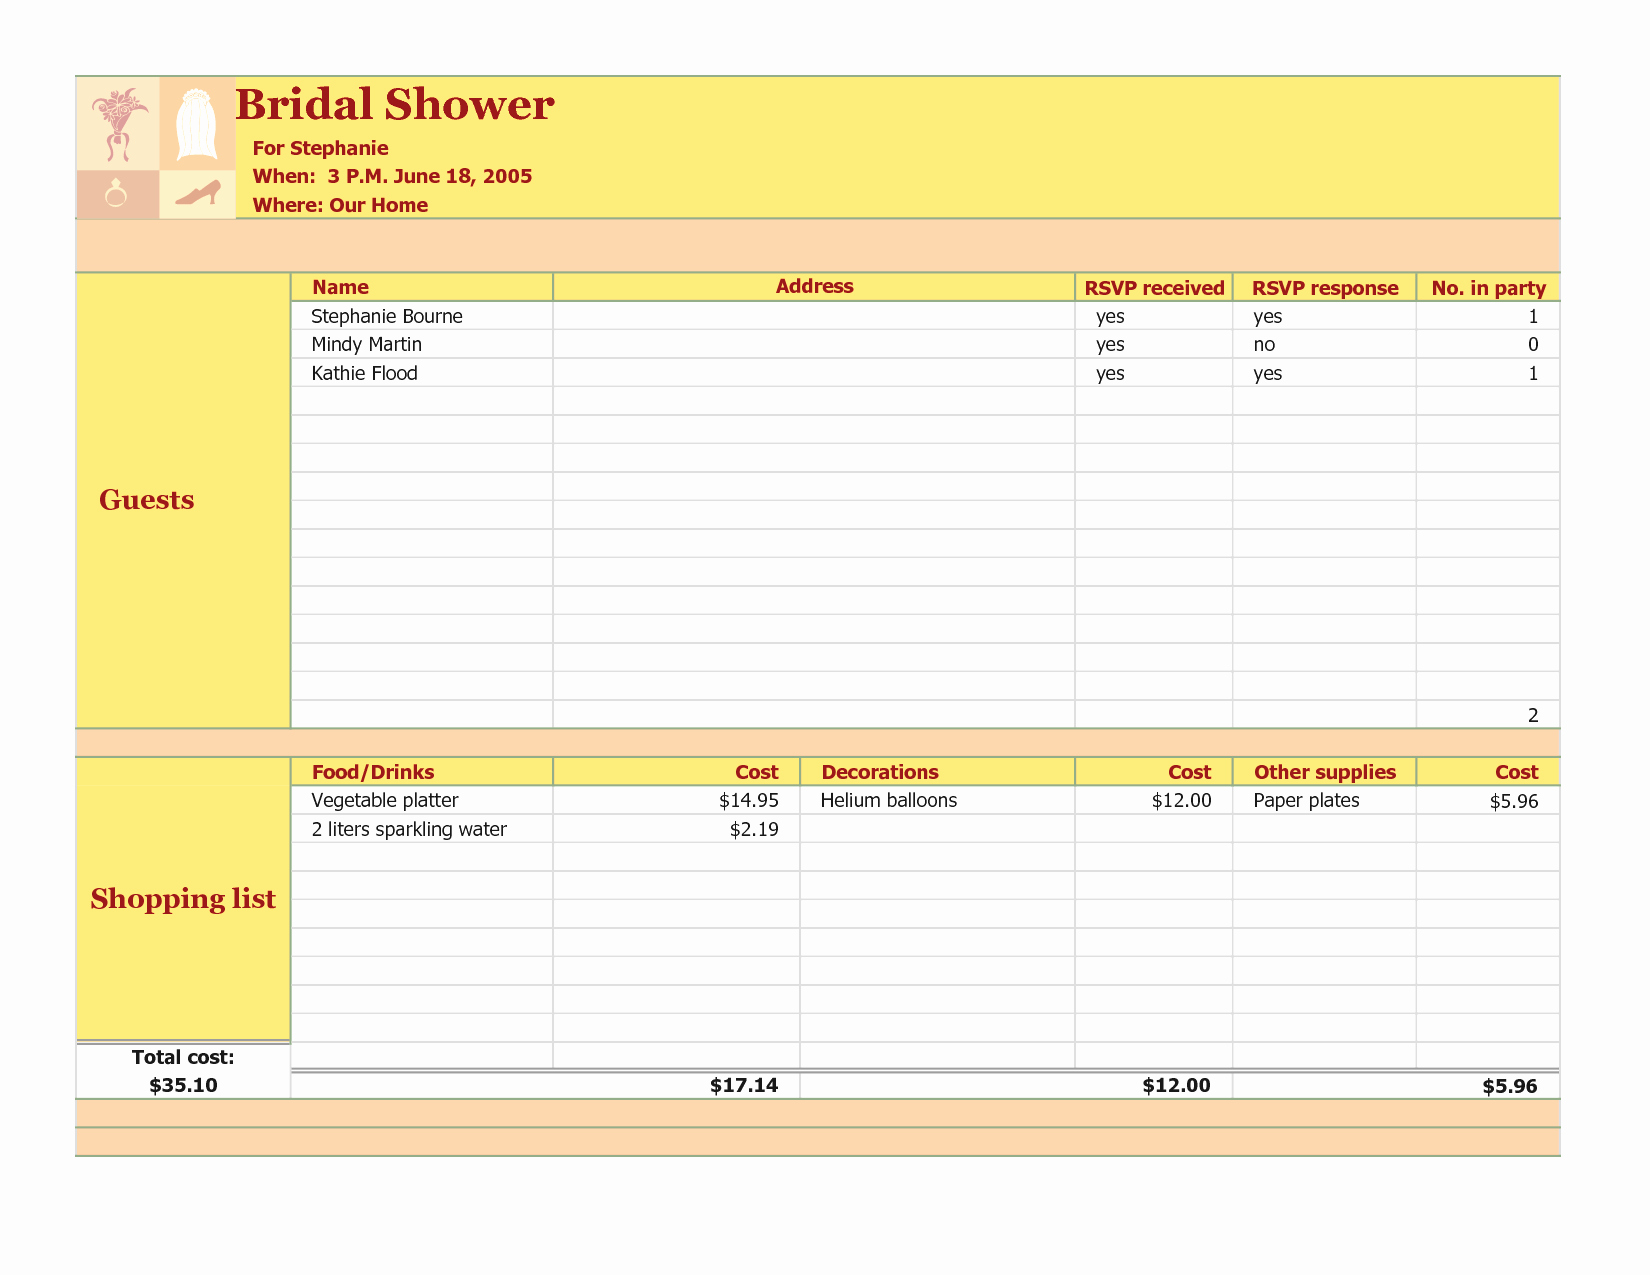 Bridal Shower Checklist Template Elegant Wedding Planning Guest List Template Doc Clean Life and